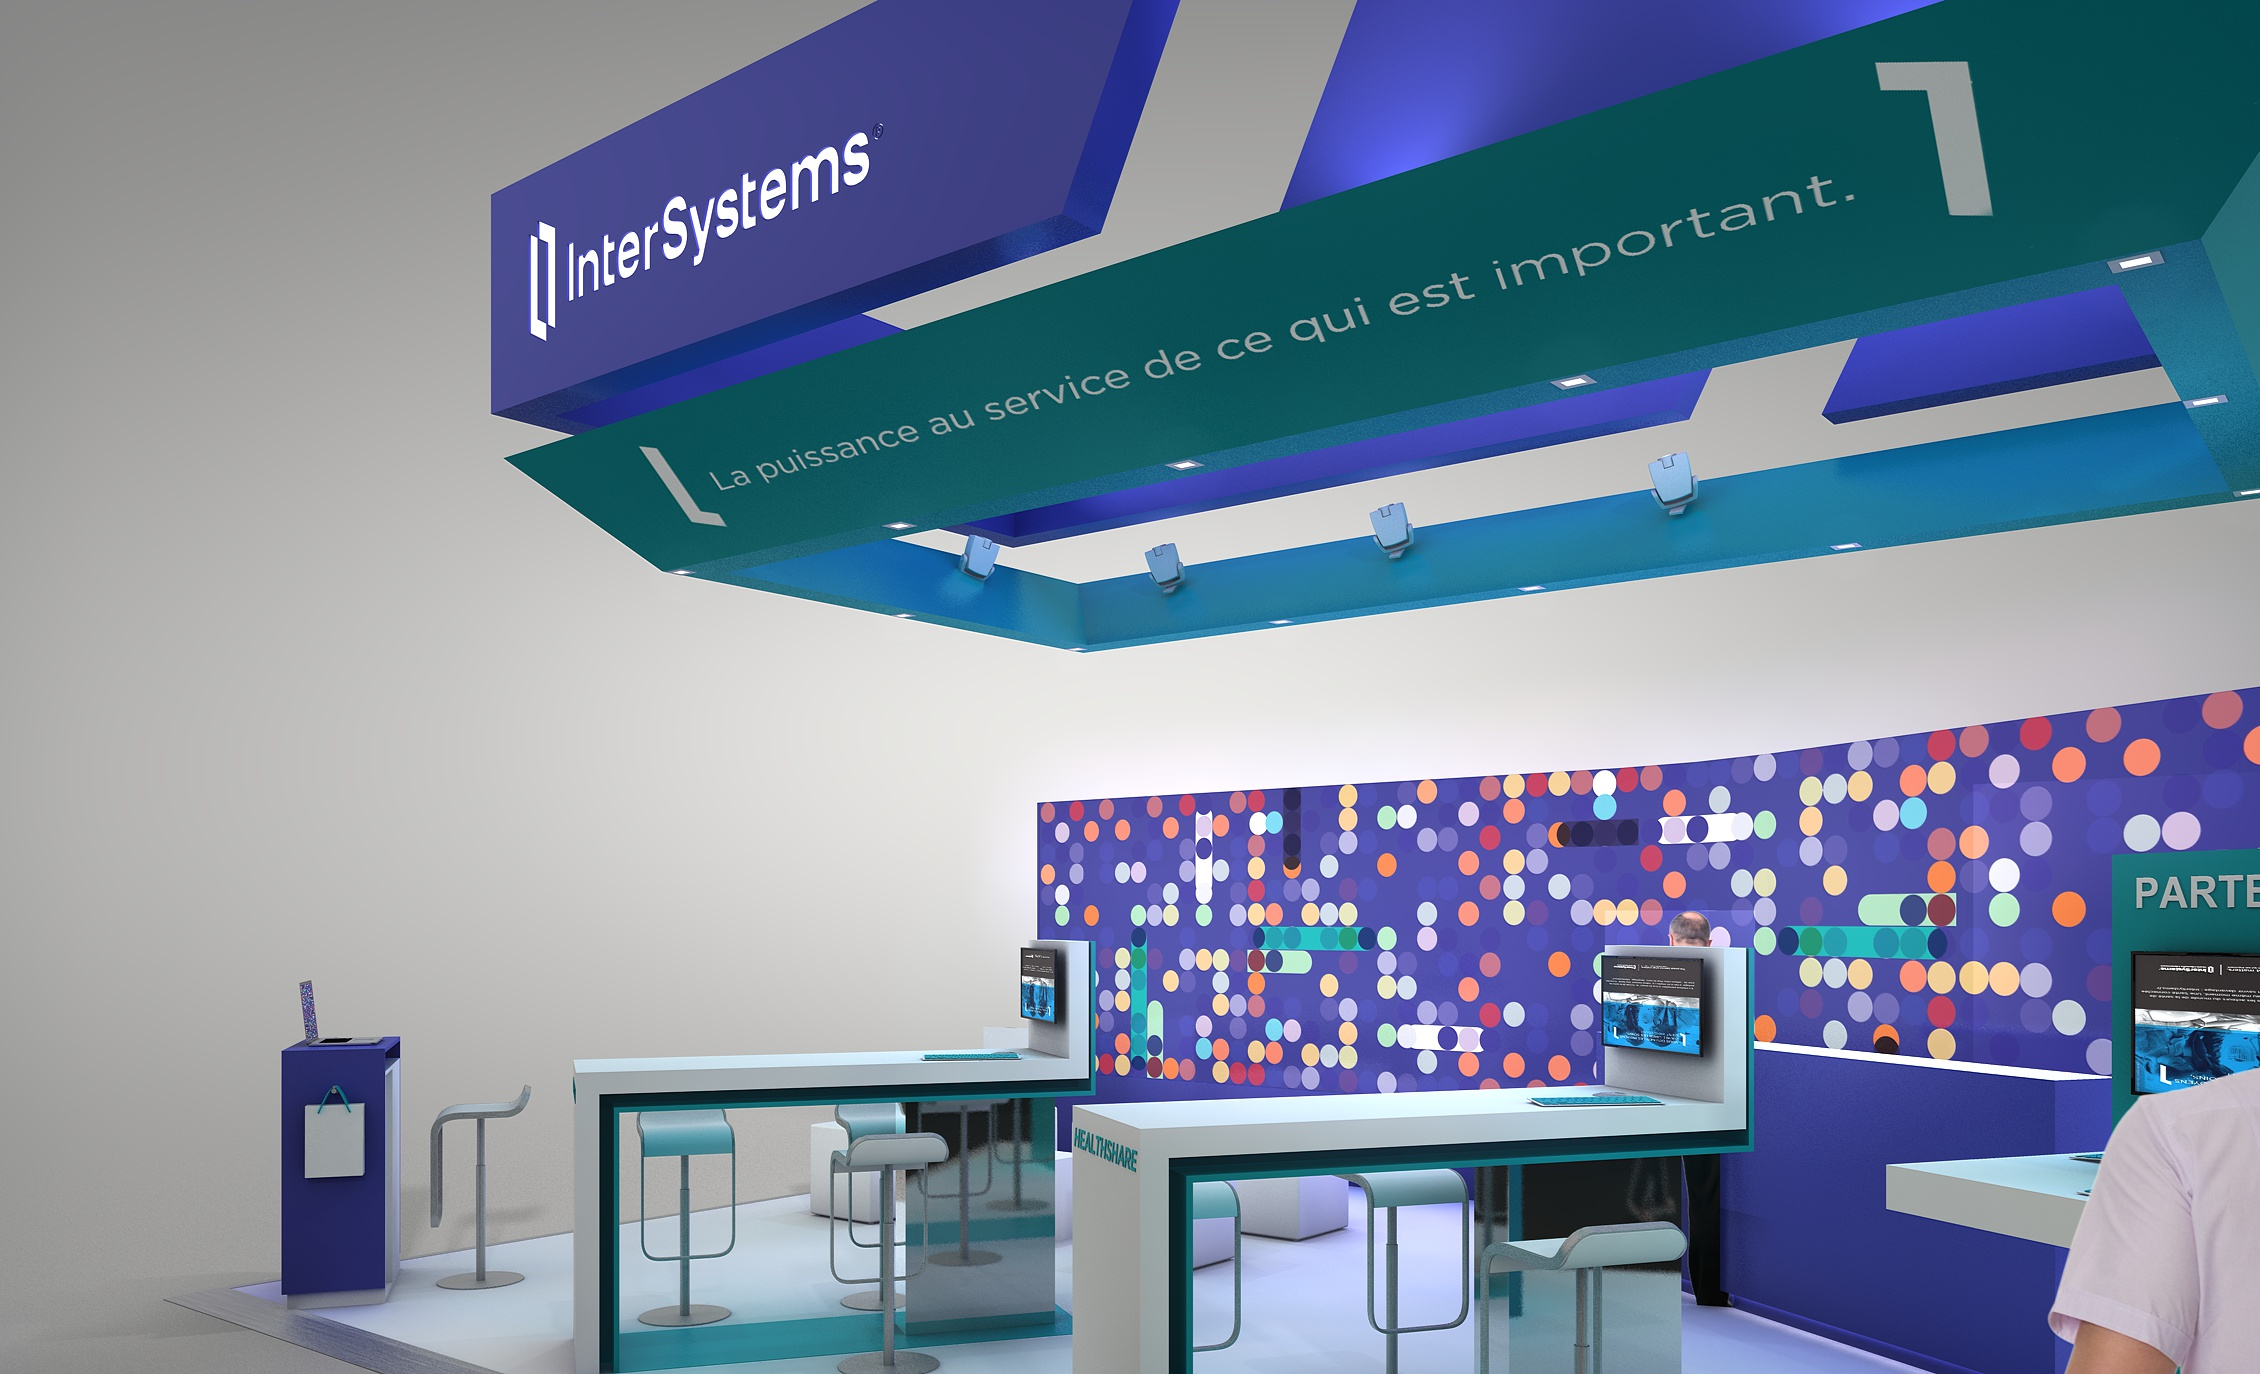 PROJET stand exposition Intersystems HIT 08.jpg